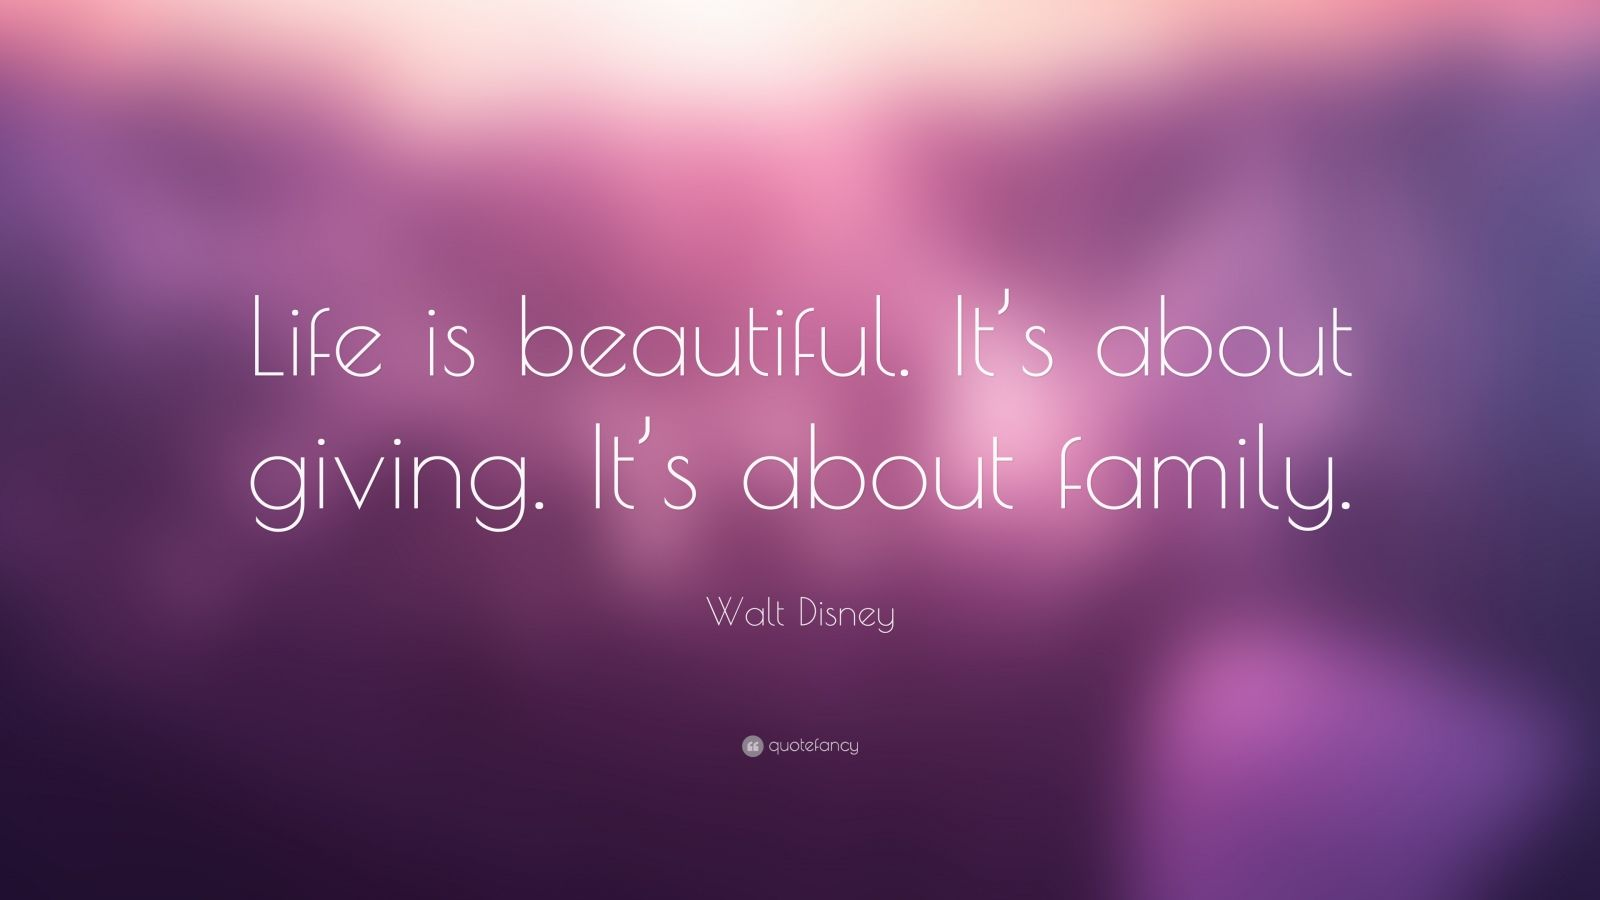 Walt Disney Quotes About Life Walt Disney Quotes 100 Wallpapers  Quotefancy